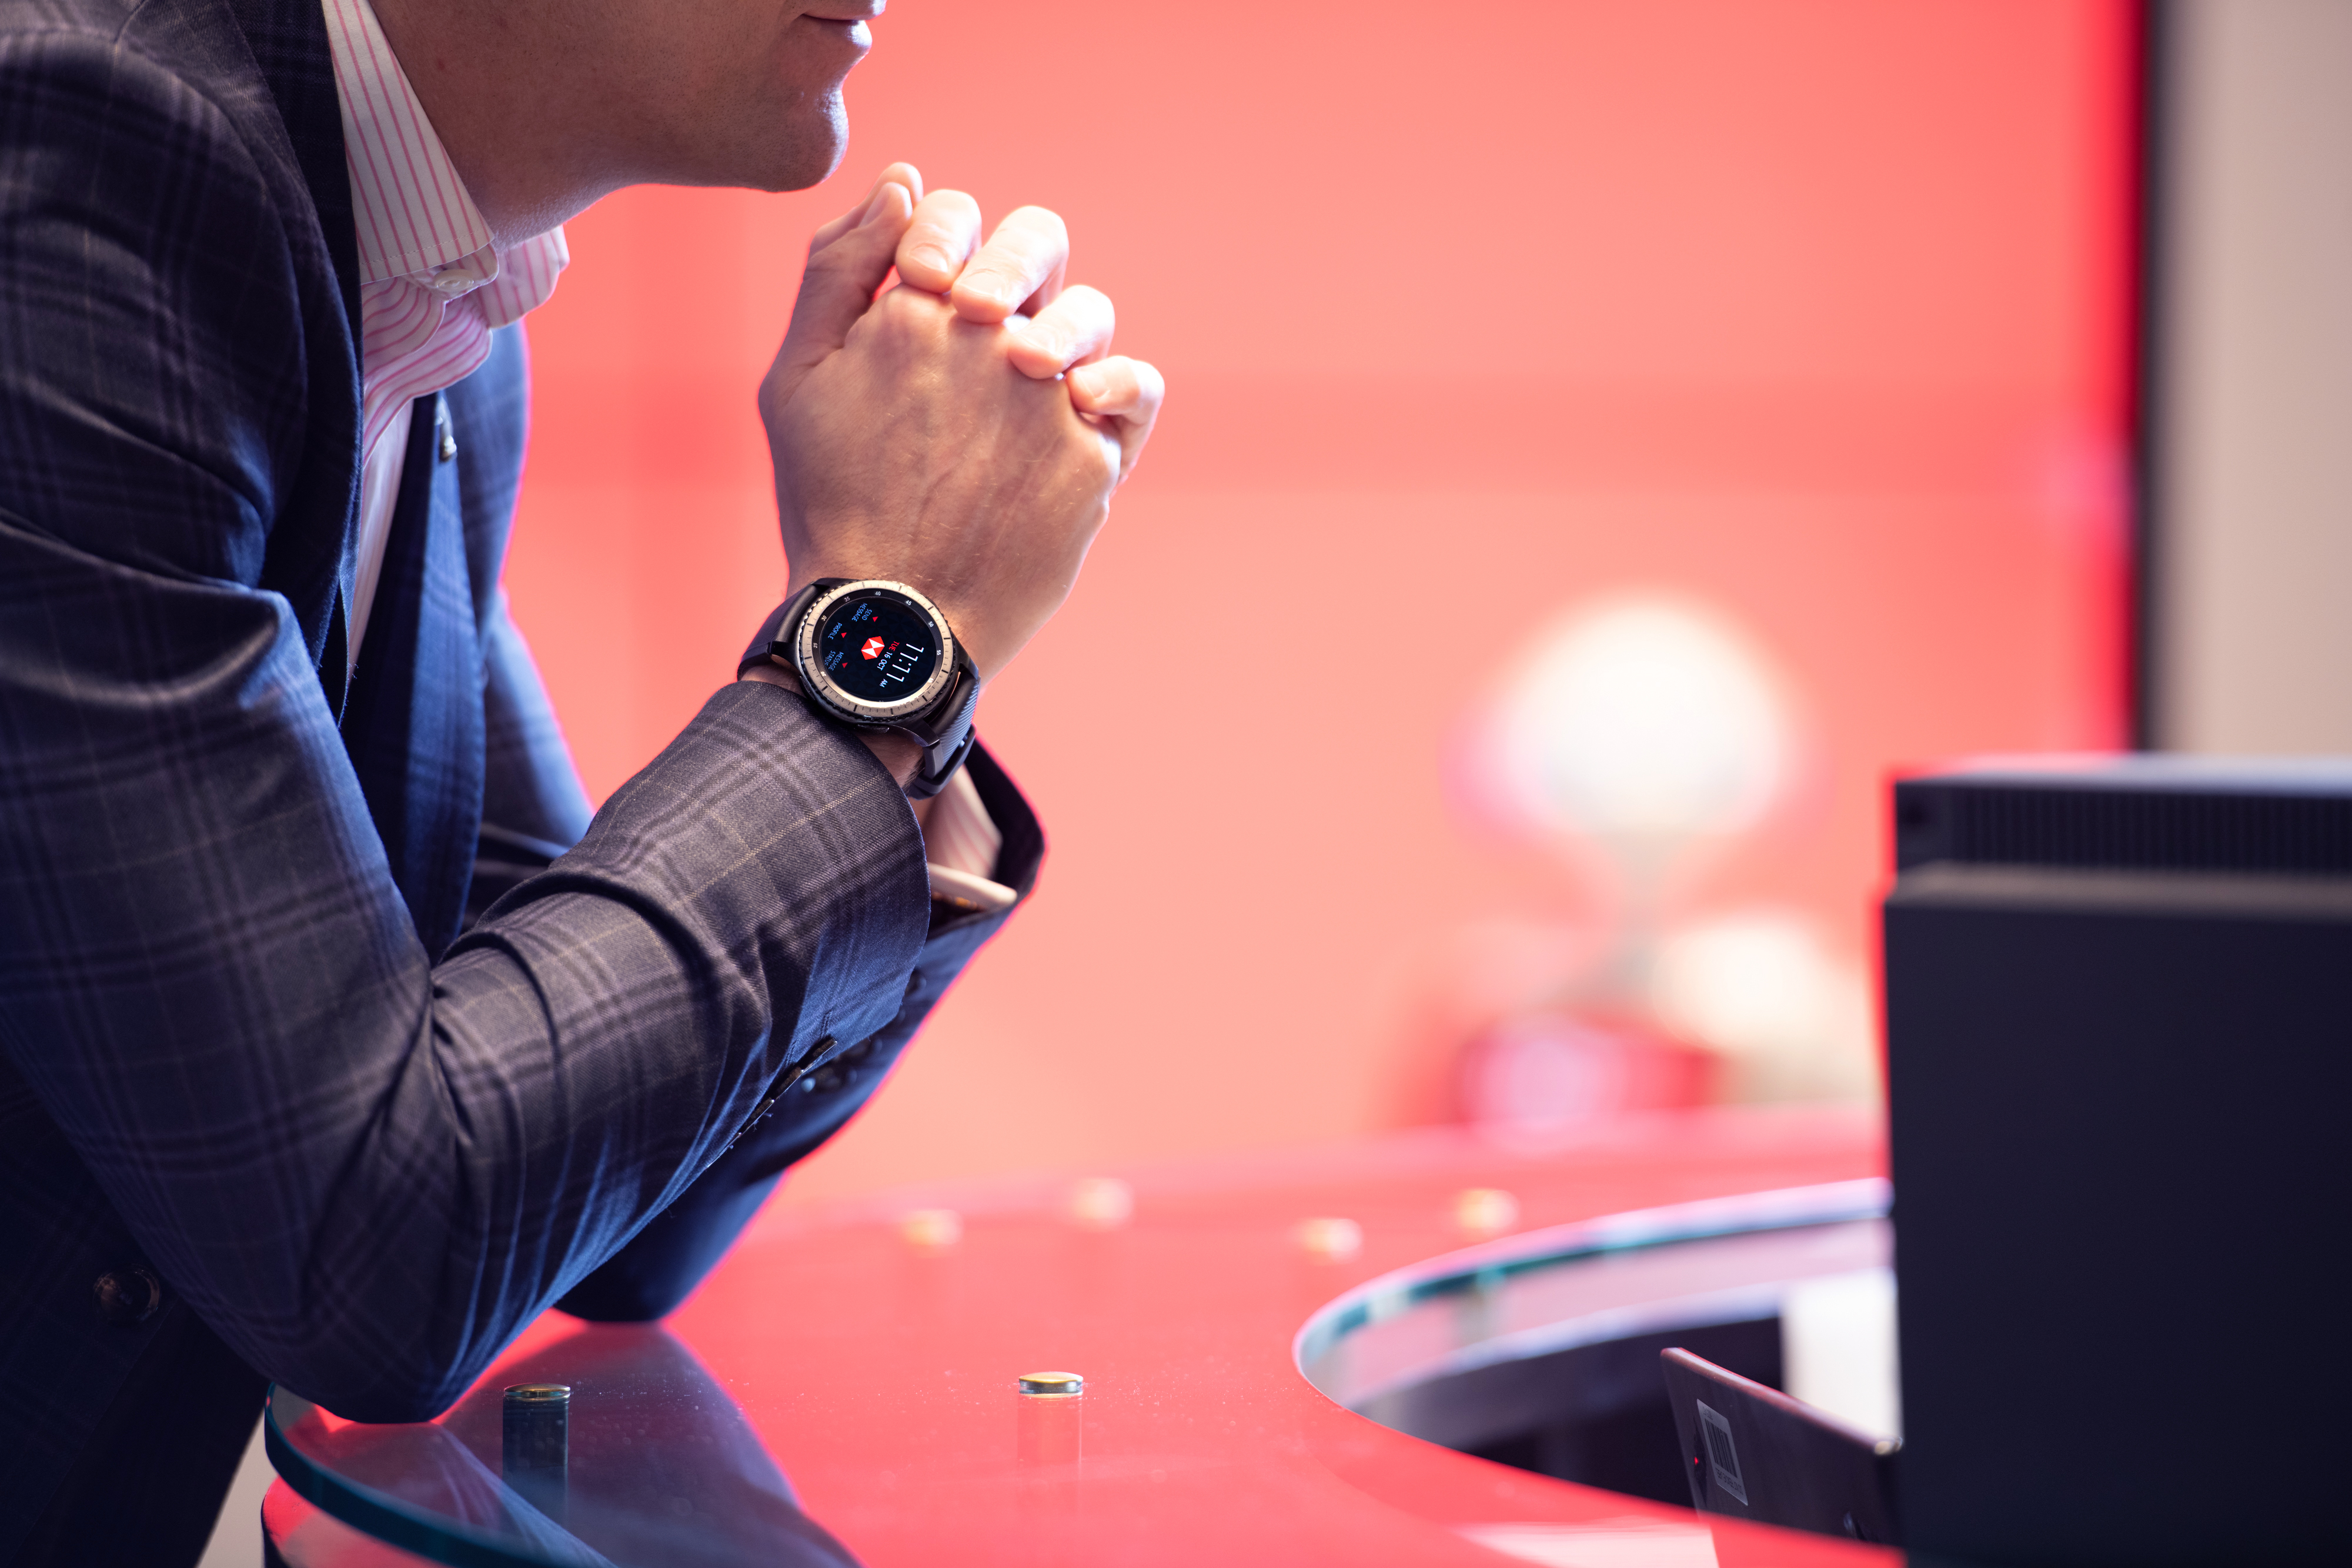 HSBC Bank and Samsung Launch Wearable Technology in HSBC's Flagship